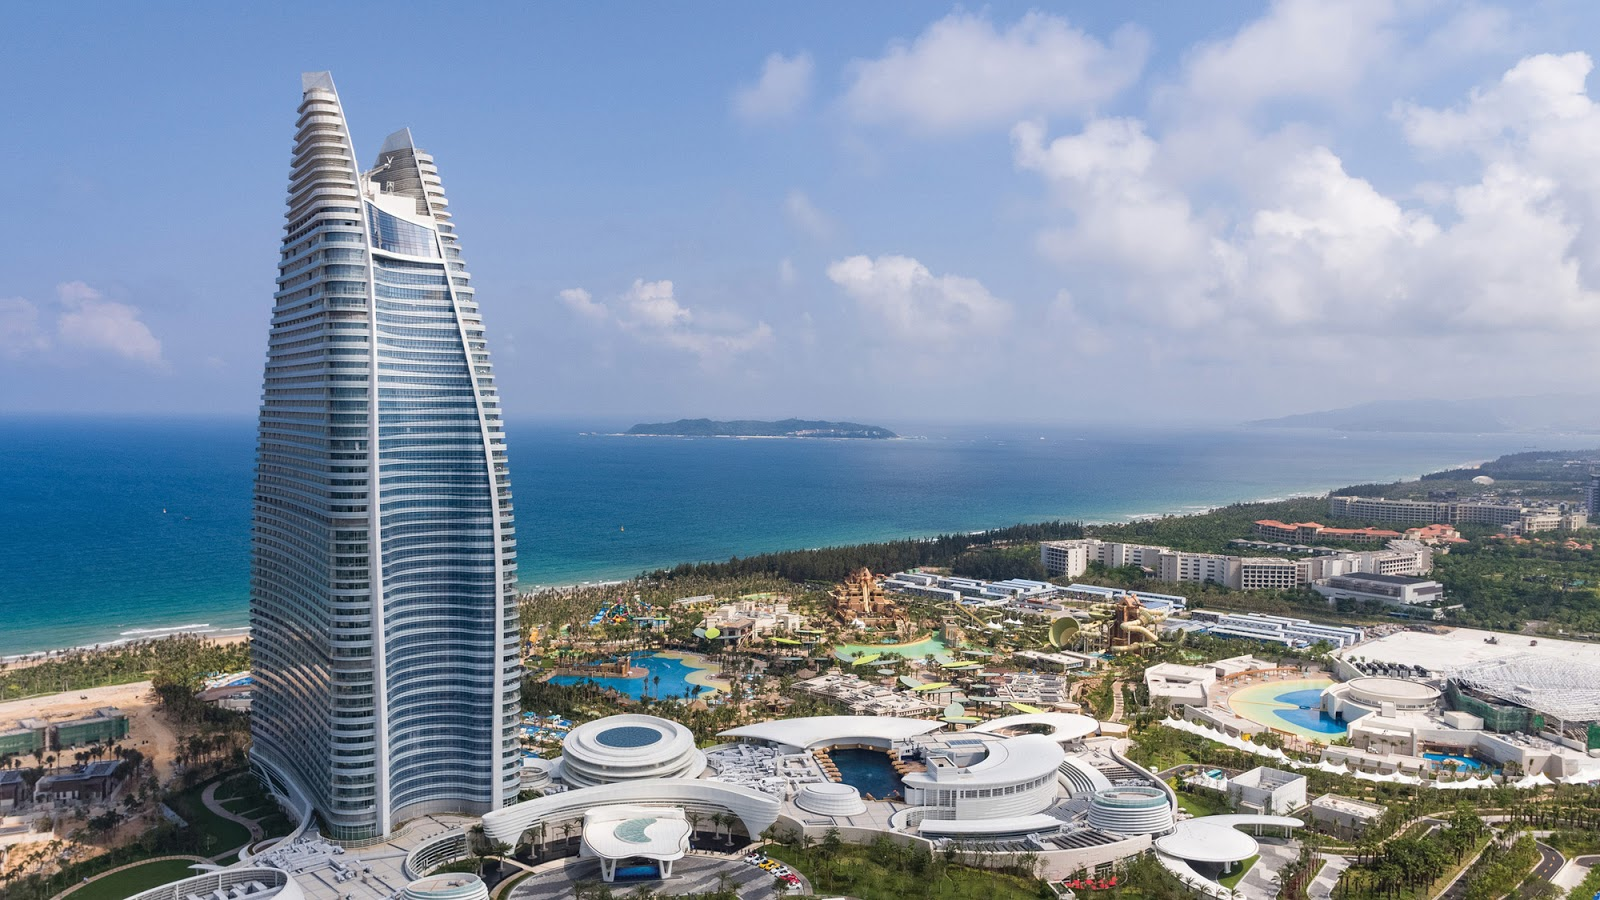 A panoramic view of the Atlantis Sanya in China